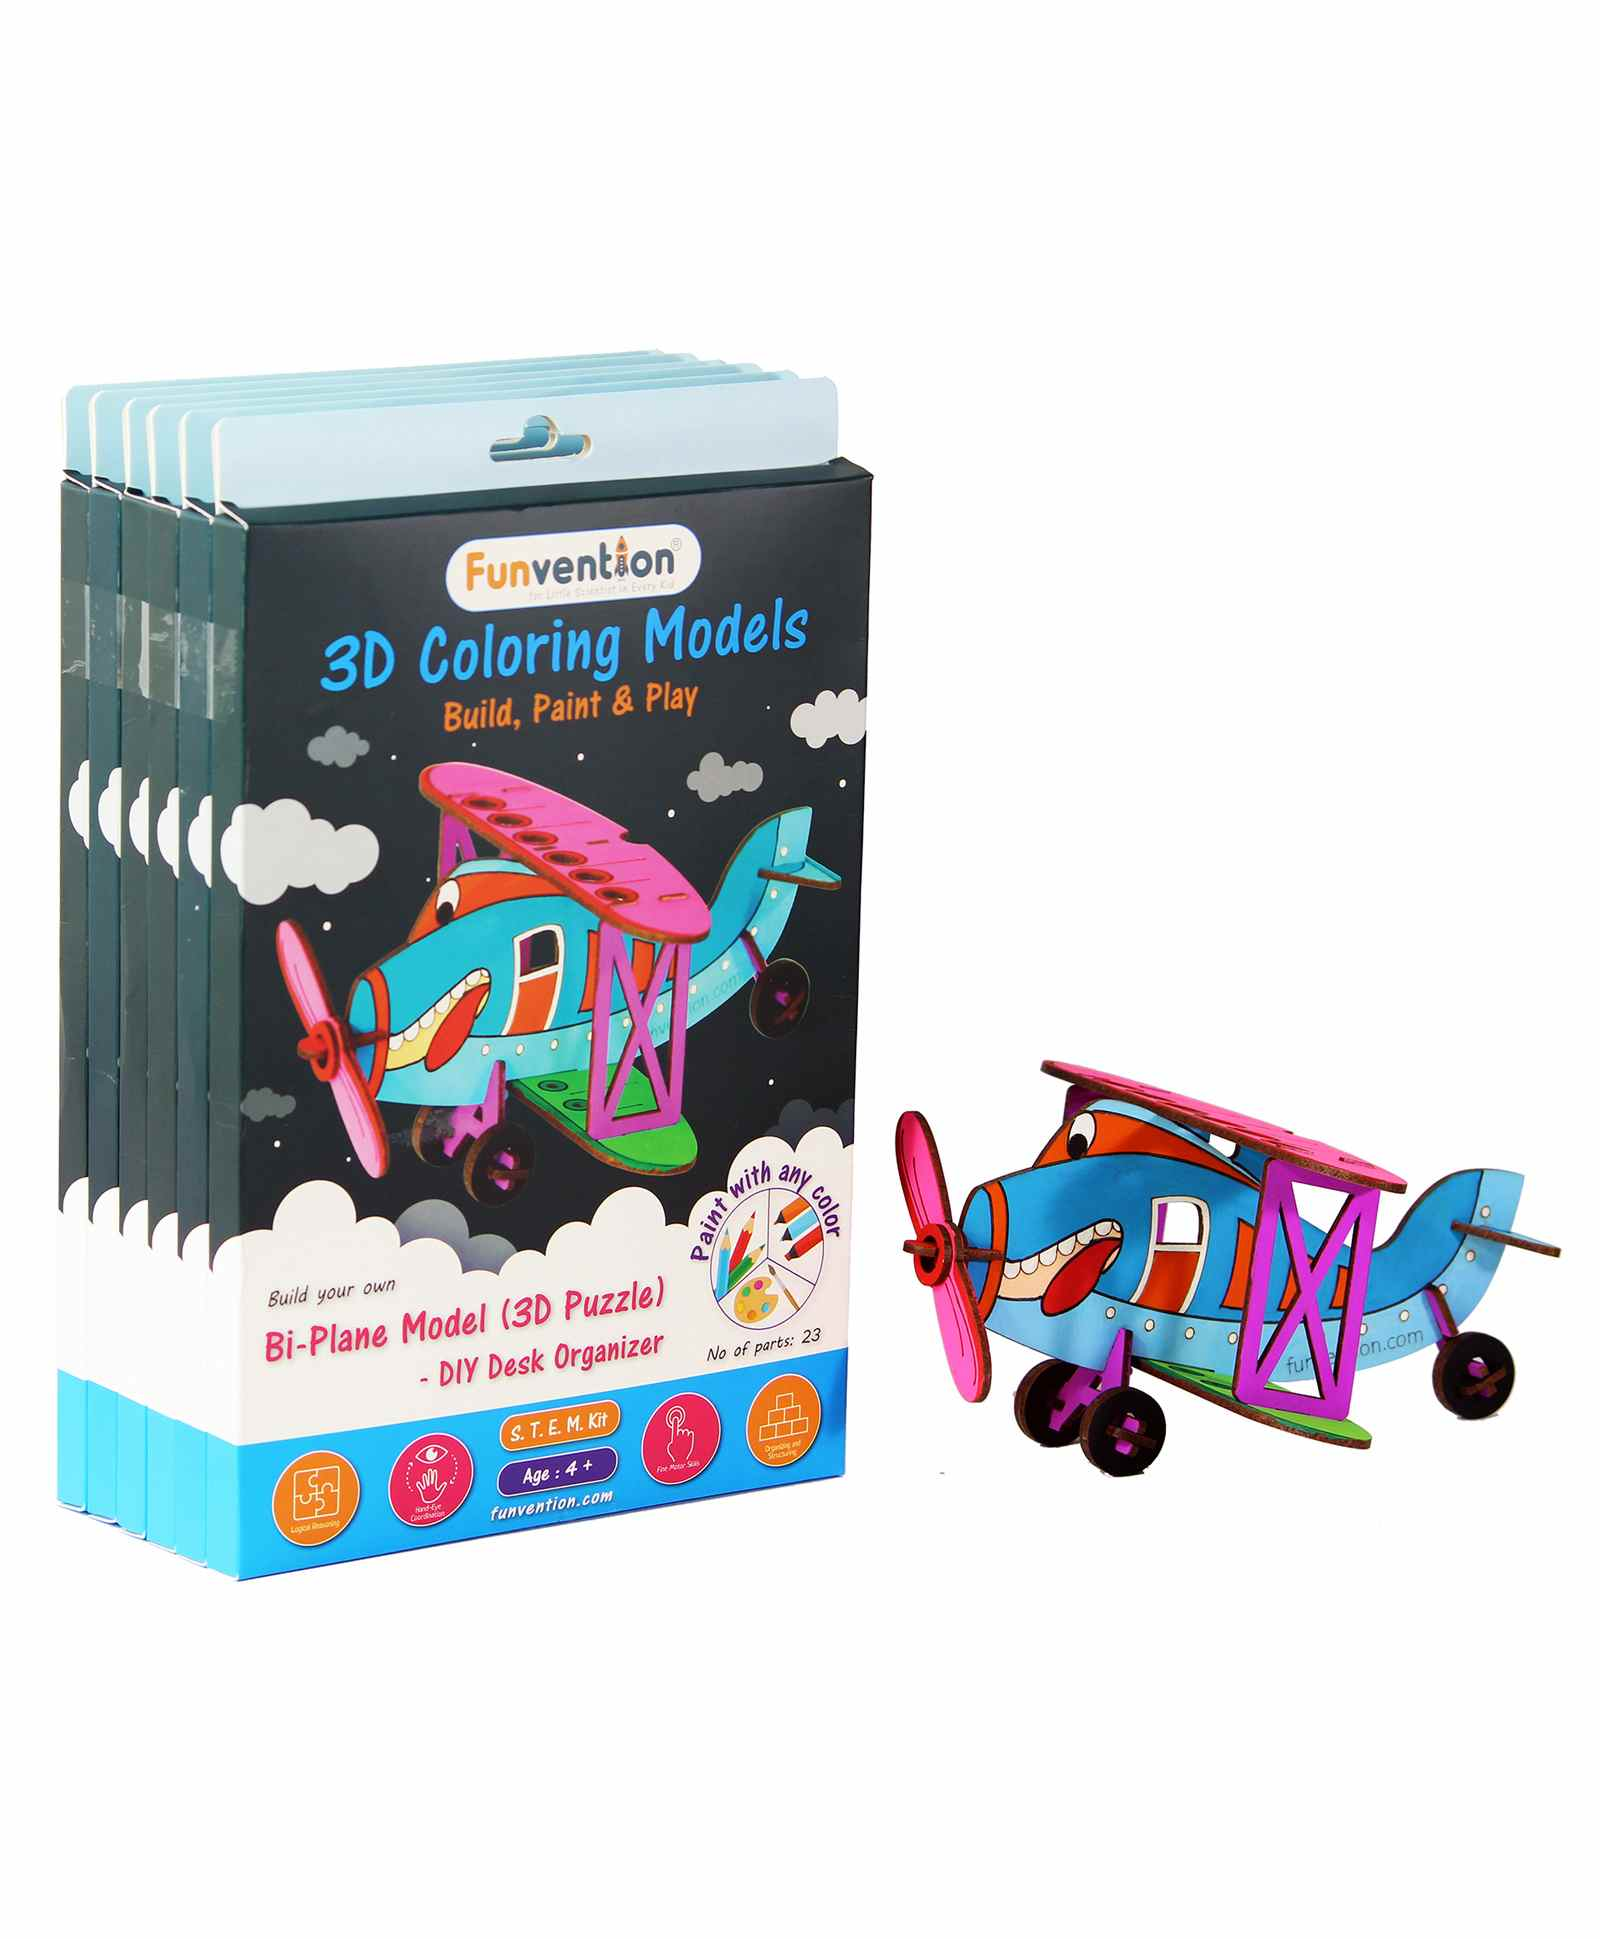 Funvention Mdf Wood 3d Coloring Model Bi Plane Diy Puzzle Toy Multicolor Pack Of 6 23 Pieces Each Online India Buy Puzzle Games Toys For 4 8 Years At Firstcry Com 8144659